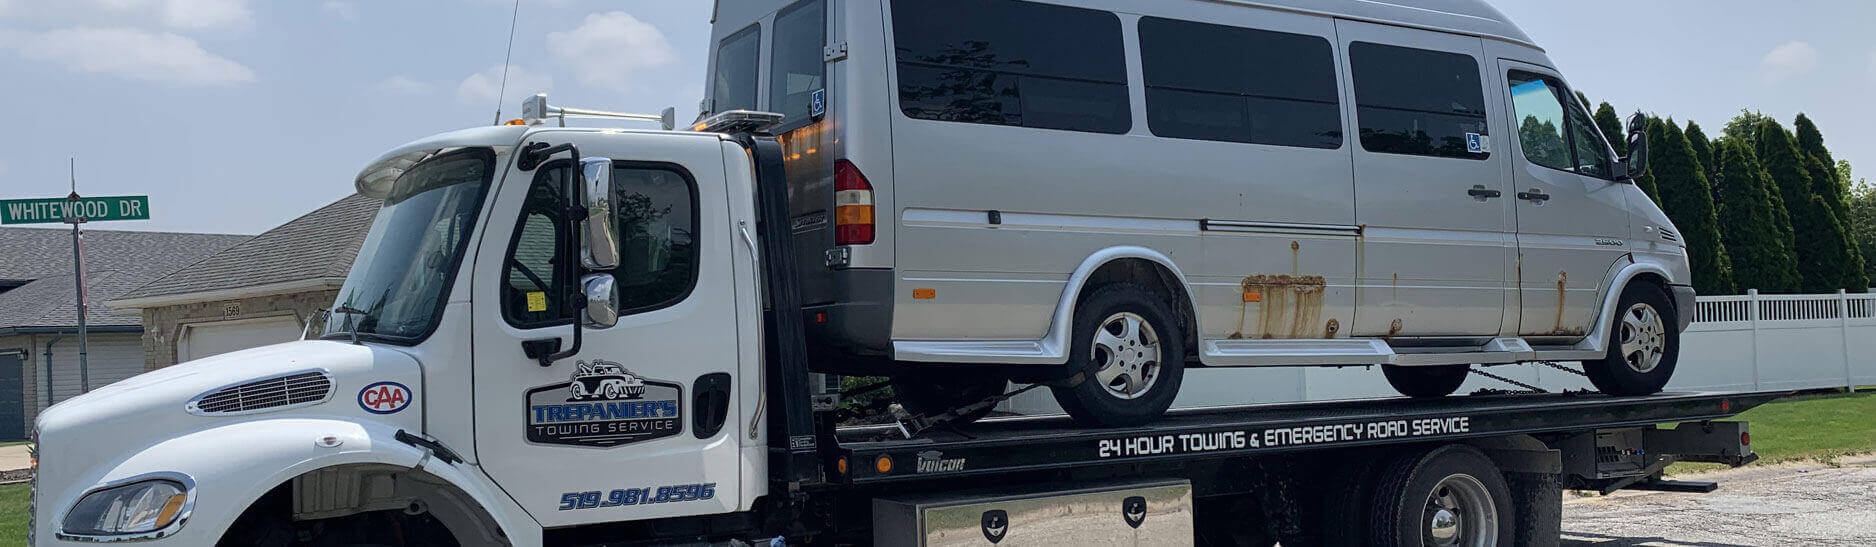 Windsor Towing Service, Tow Truck Service and Emergency Roadside Assistance